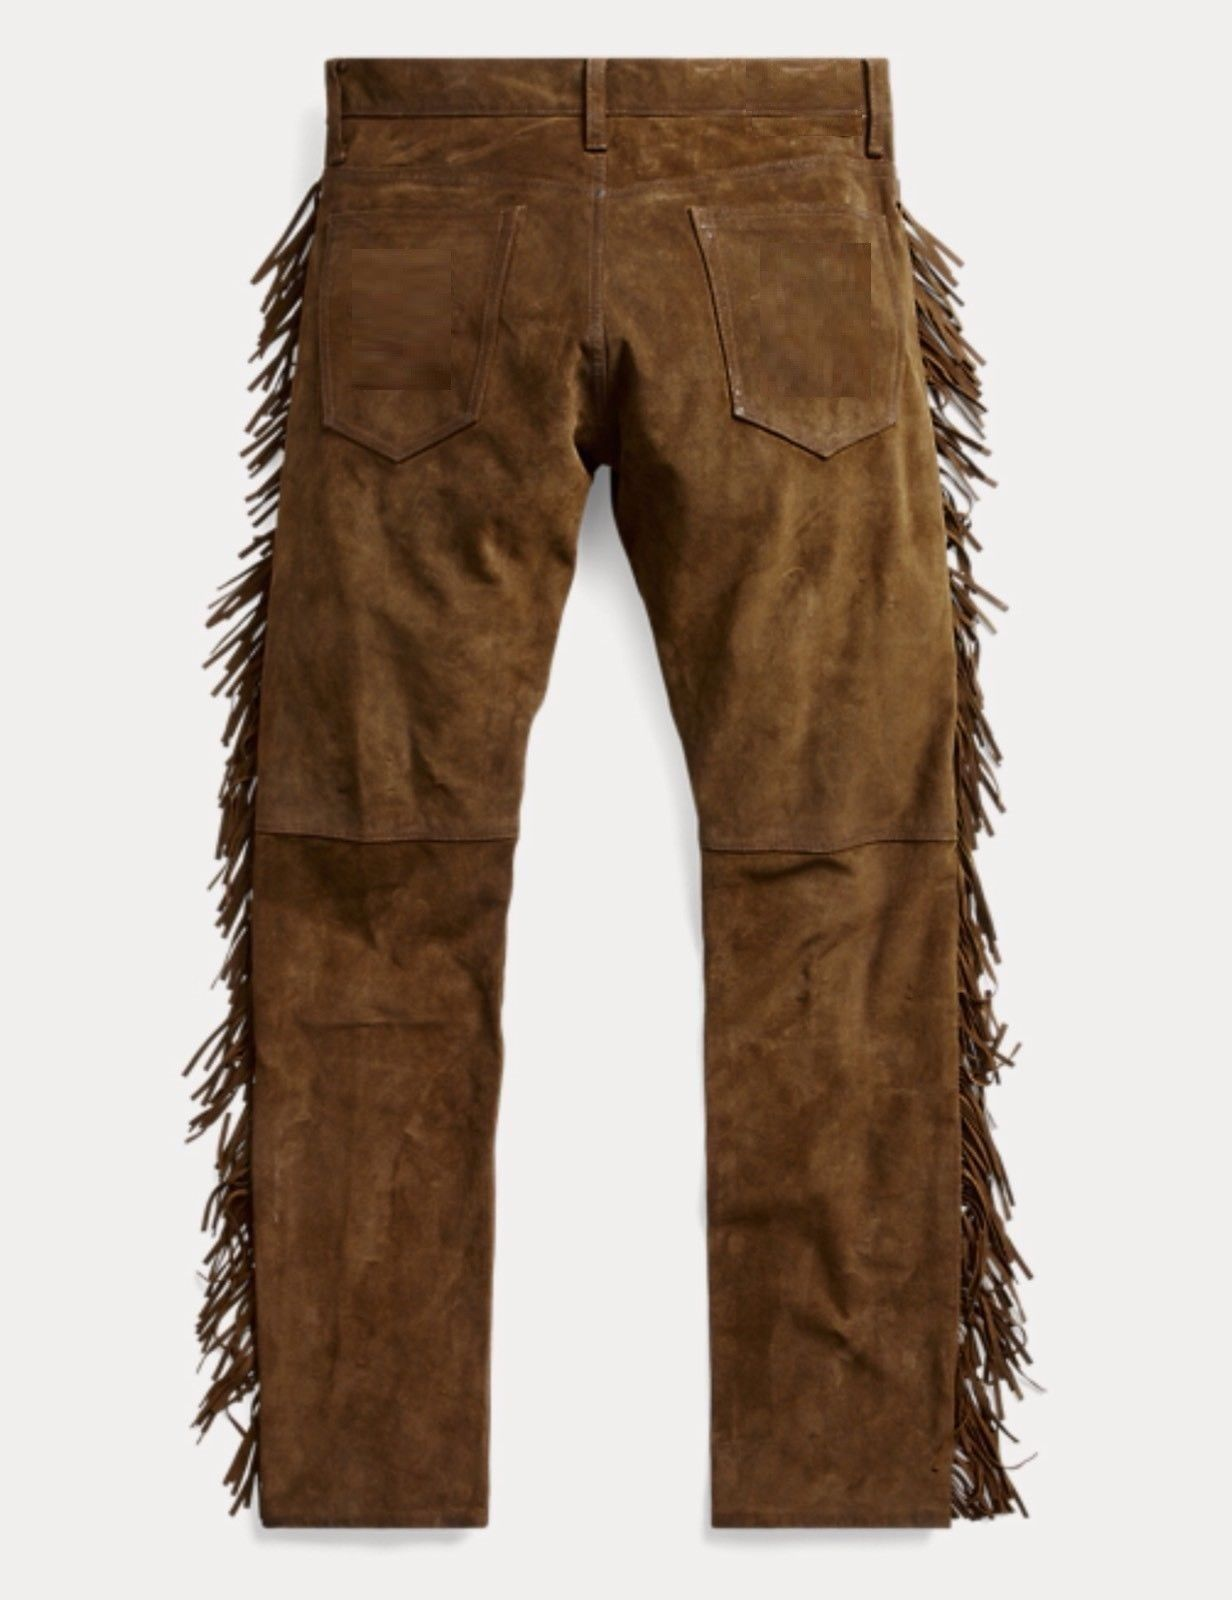 Men's New Native American Buckskin Brown Suede Leather Fringes Hippie Pants WP2